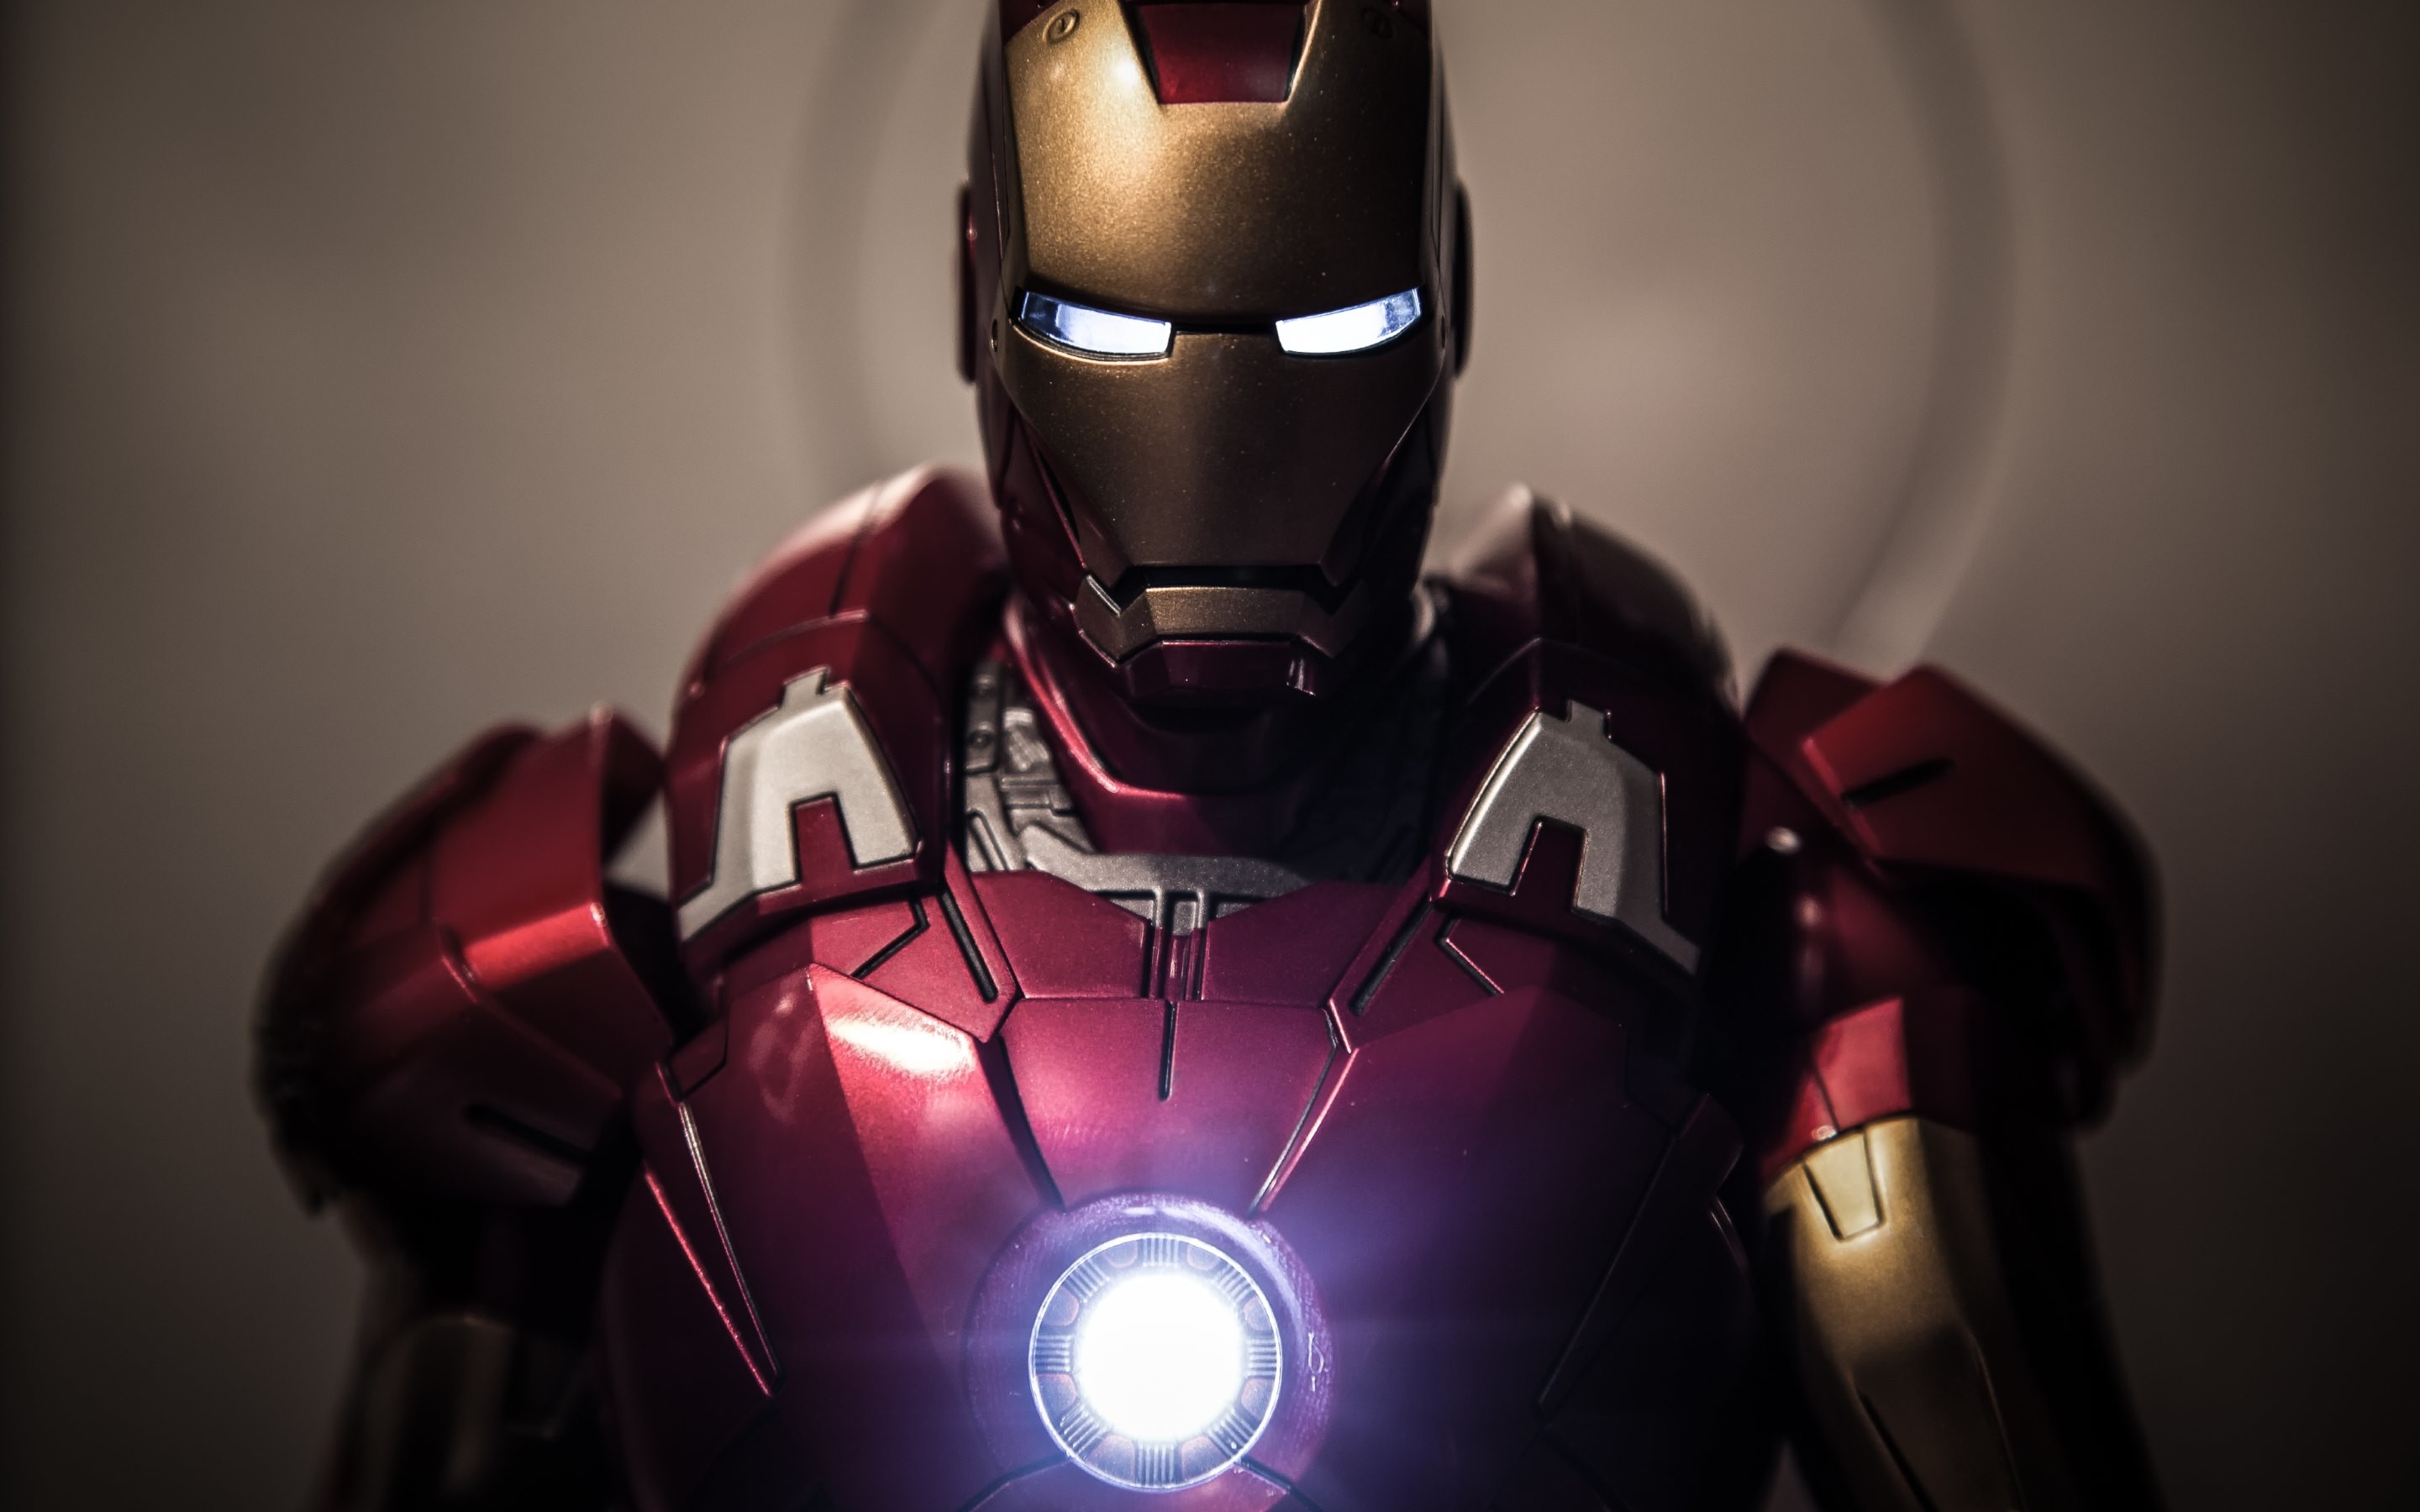 Samsung Hd Wallpapers 1080p: Iron Man HD Wallpapers 1080p (72+ Images